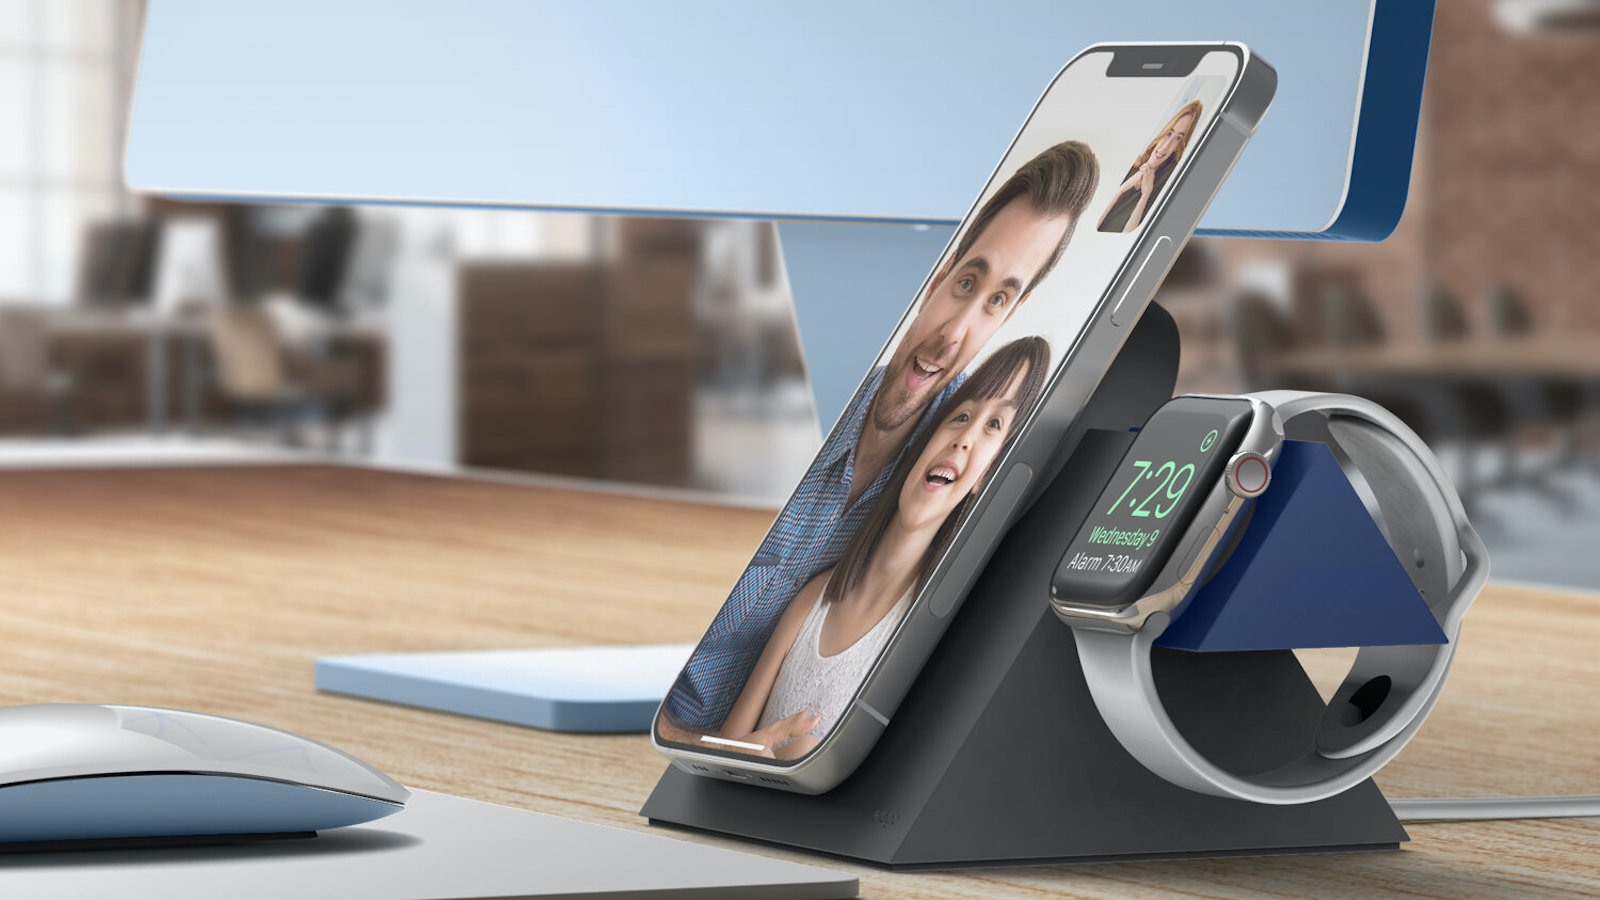 Elago MS5 Duo Charging Stand with MagSafe works with MagSafe and Apple Watch chargers